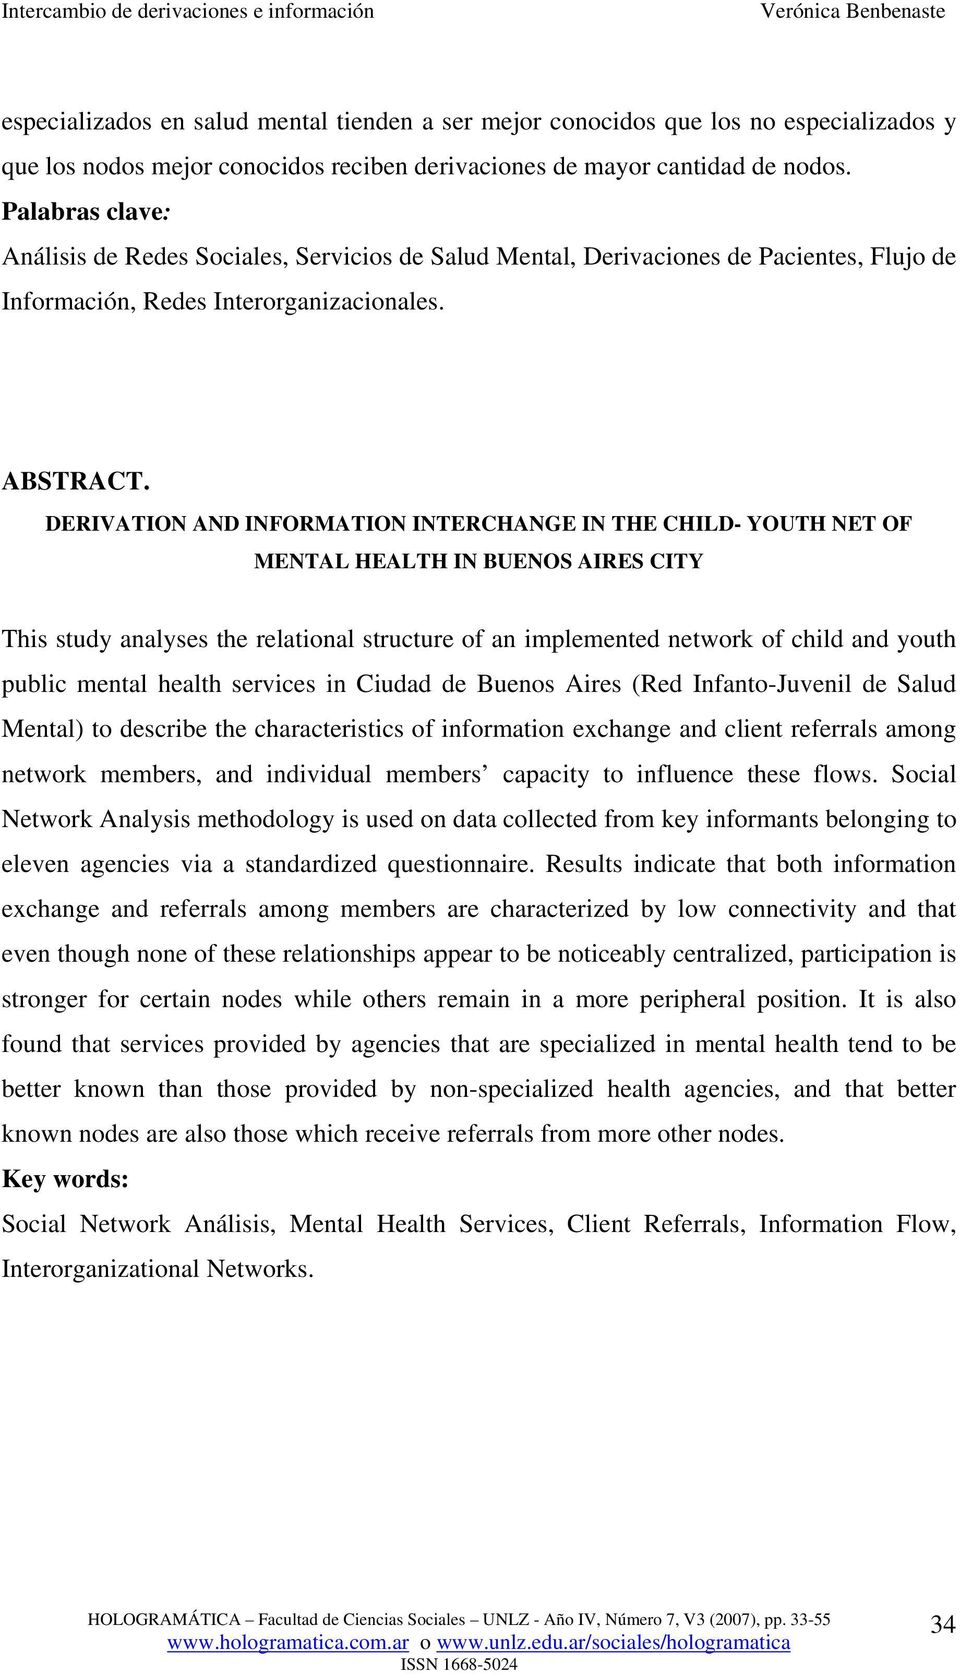 DERIVATION AND INFORMATION INTERCHANGE IN THE CHILD- YOUTH NET OF MENTAL HEALTH IN BUENOS AIRES CITY This study analyses the relational structure of an implemented network of child and youth public